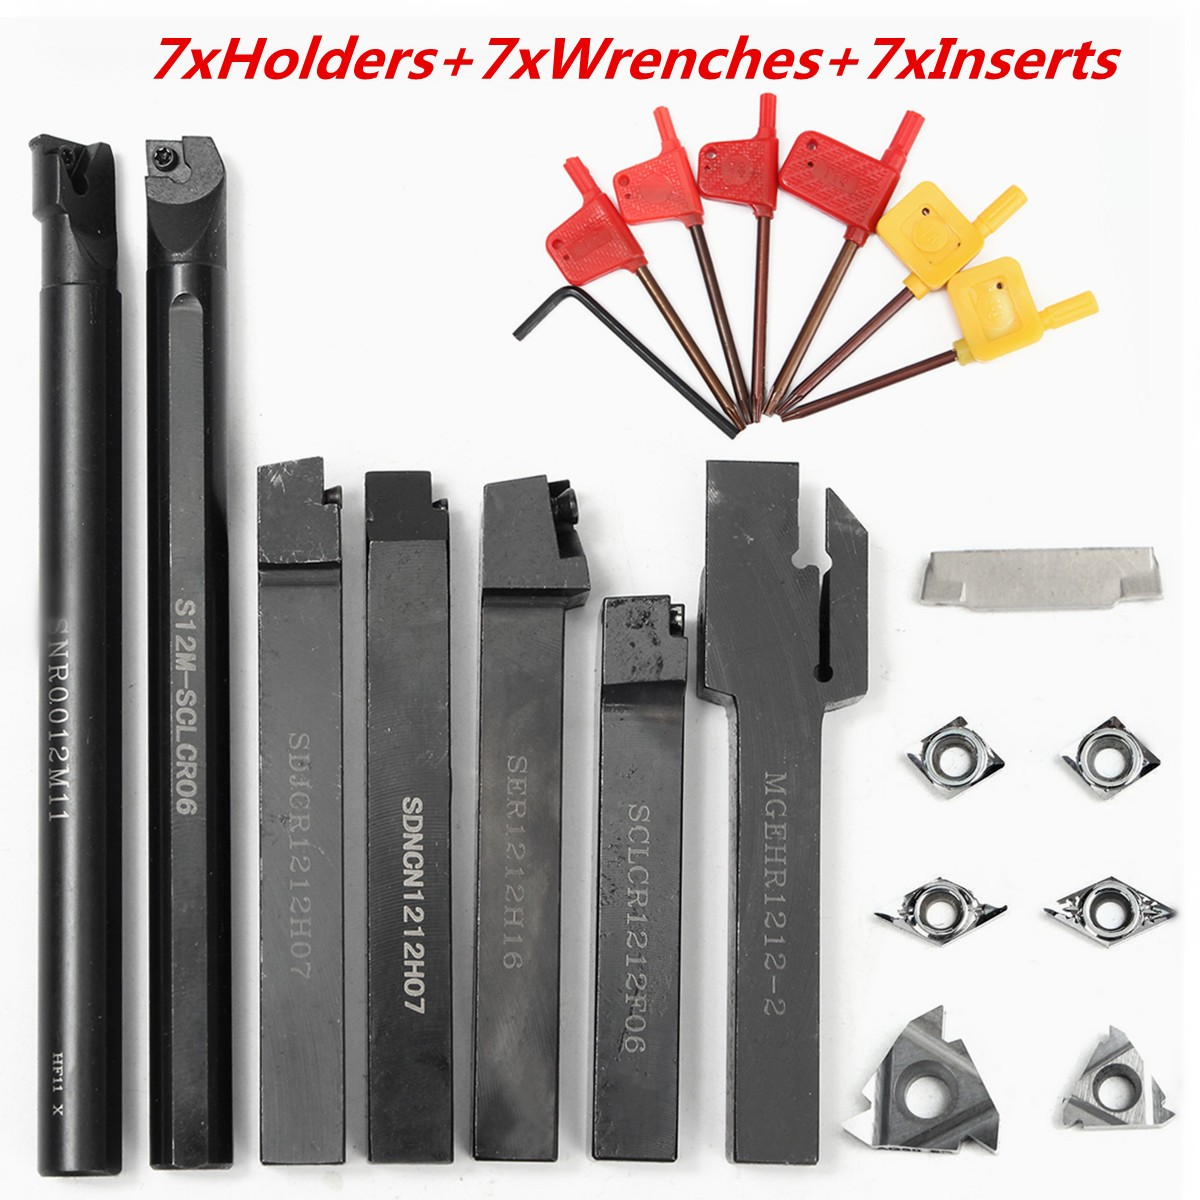 21Pcs/Set 12mm Shank Lathe Turning Tool Holder Boring Bar+ DCMT CCMT Carbide Insert + Wrench hot sale 7pcs set of 12mm cnc lathe turning tool holder boring bar with dcmt tcmt ccmt cutting insert with wrench